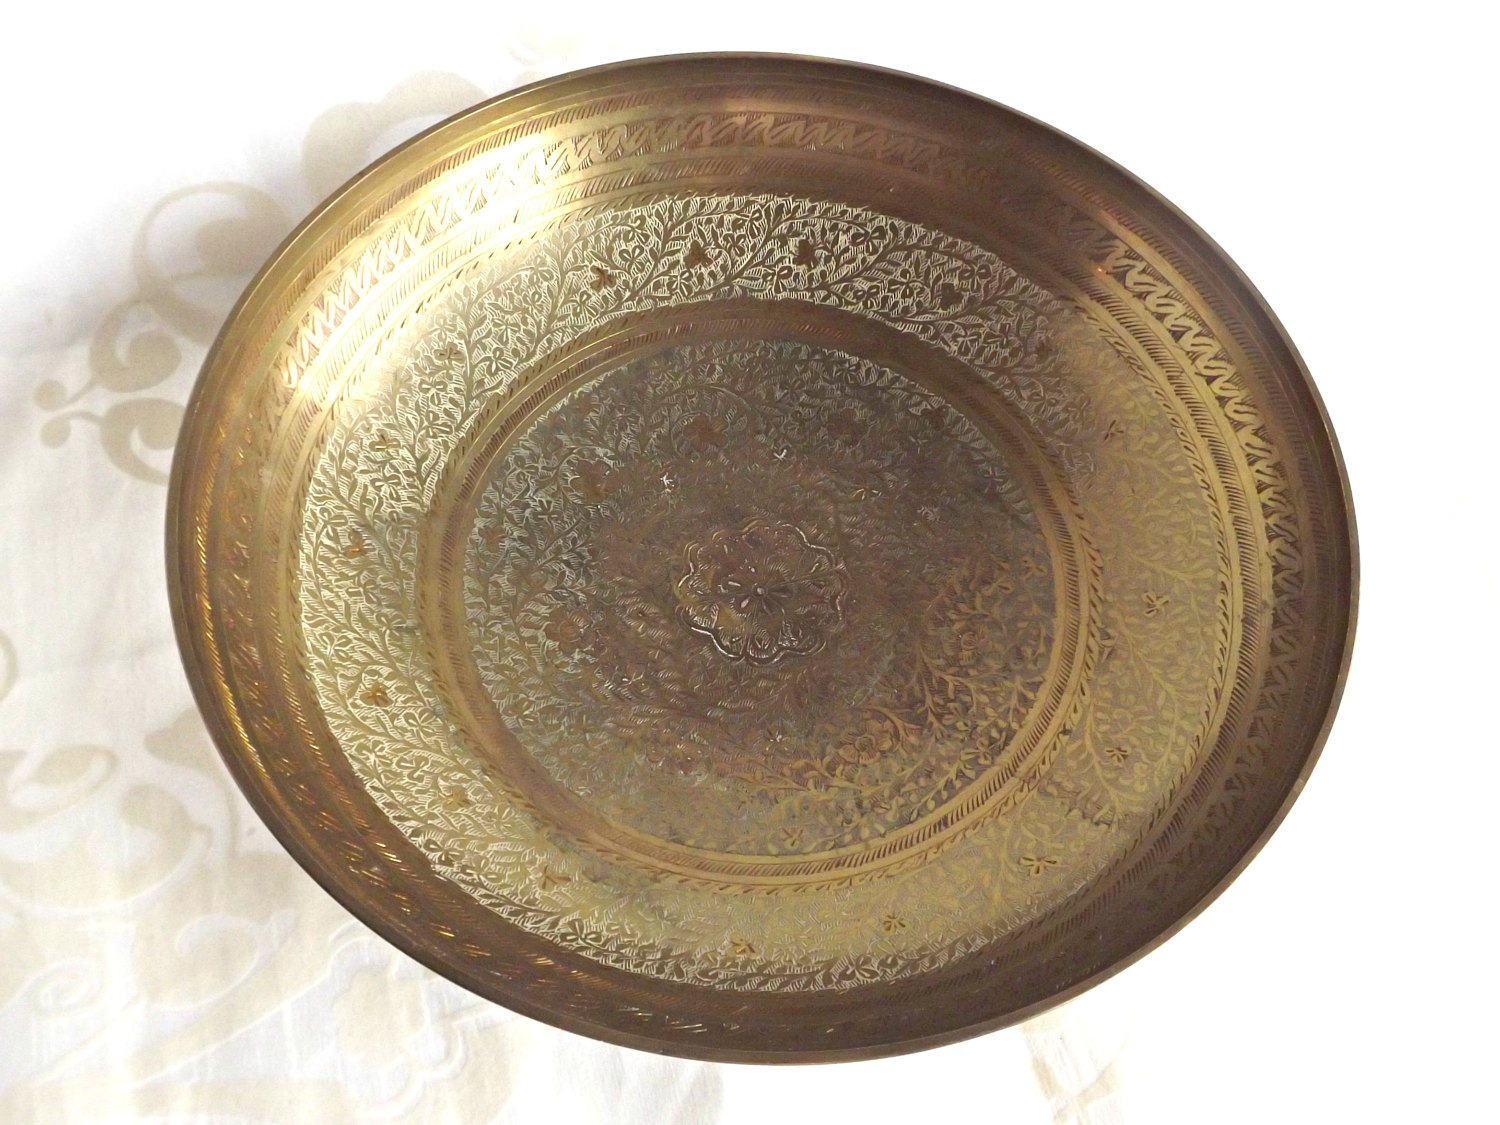 Brass Pedestal Bowl, Vintage Brass, Retro Brass Bowl, Made In India, Home